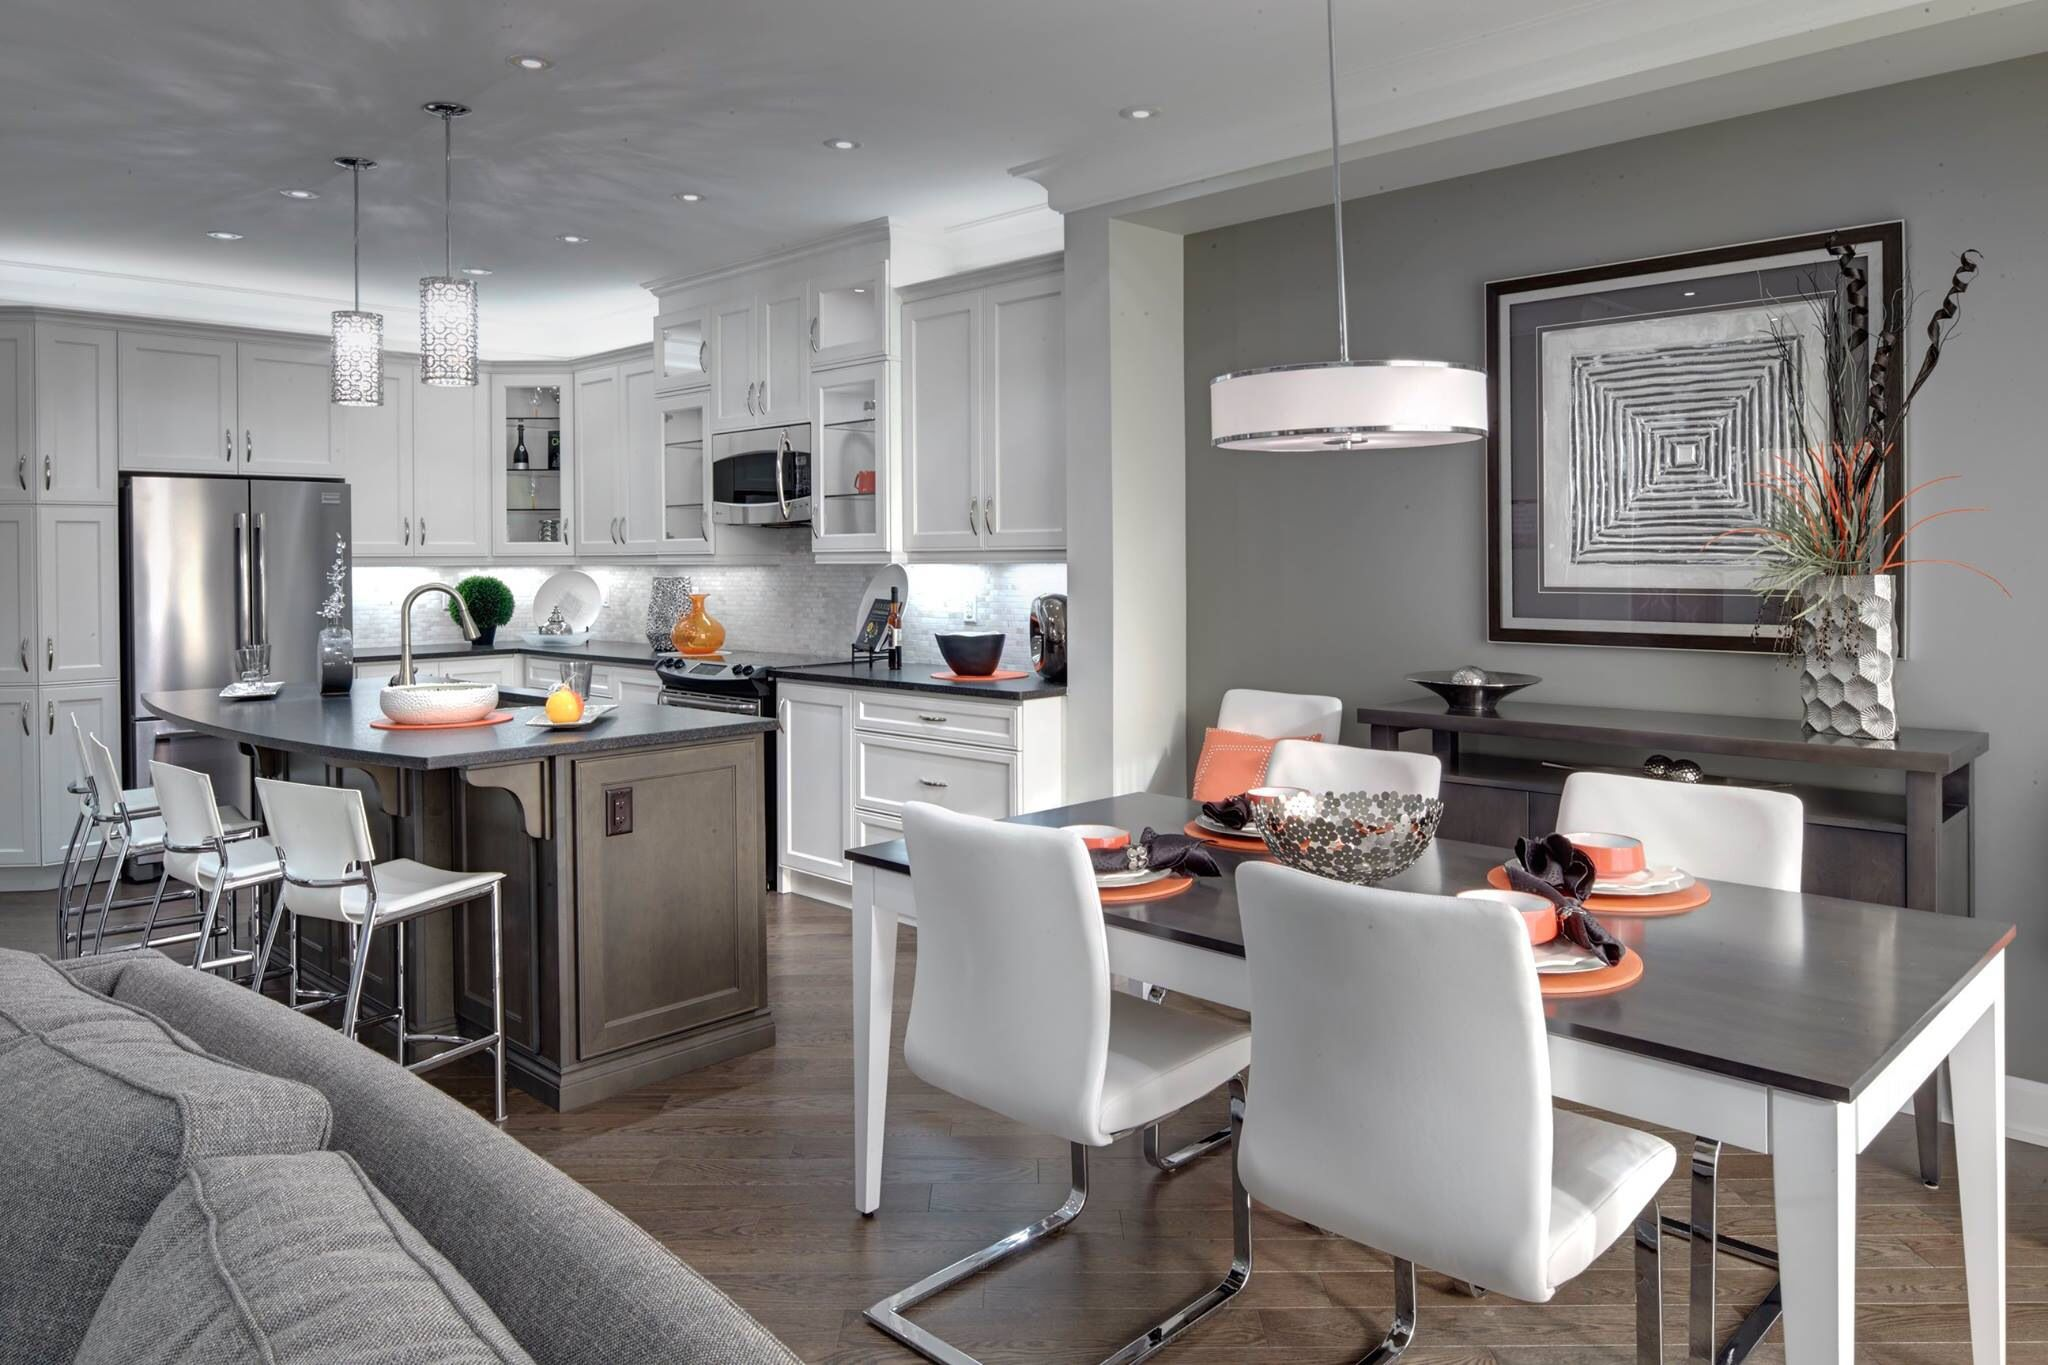 Superbe Mattamy Homes | New Homes For Sale In Oakville: Welcome To The Preserve